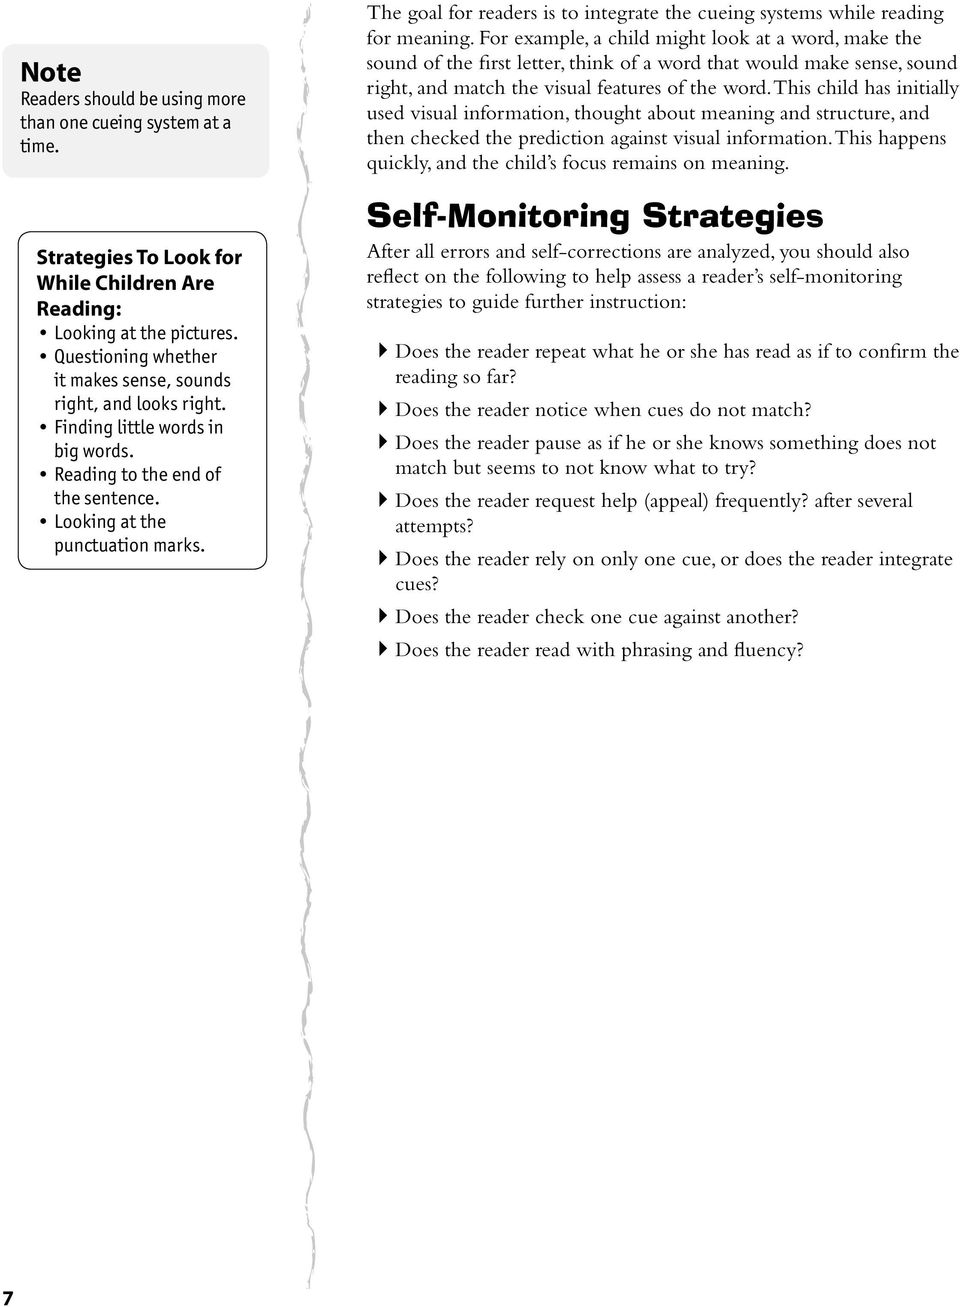 The goal for readers is to integrate the cueing systems while reading for meaning.